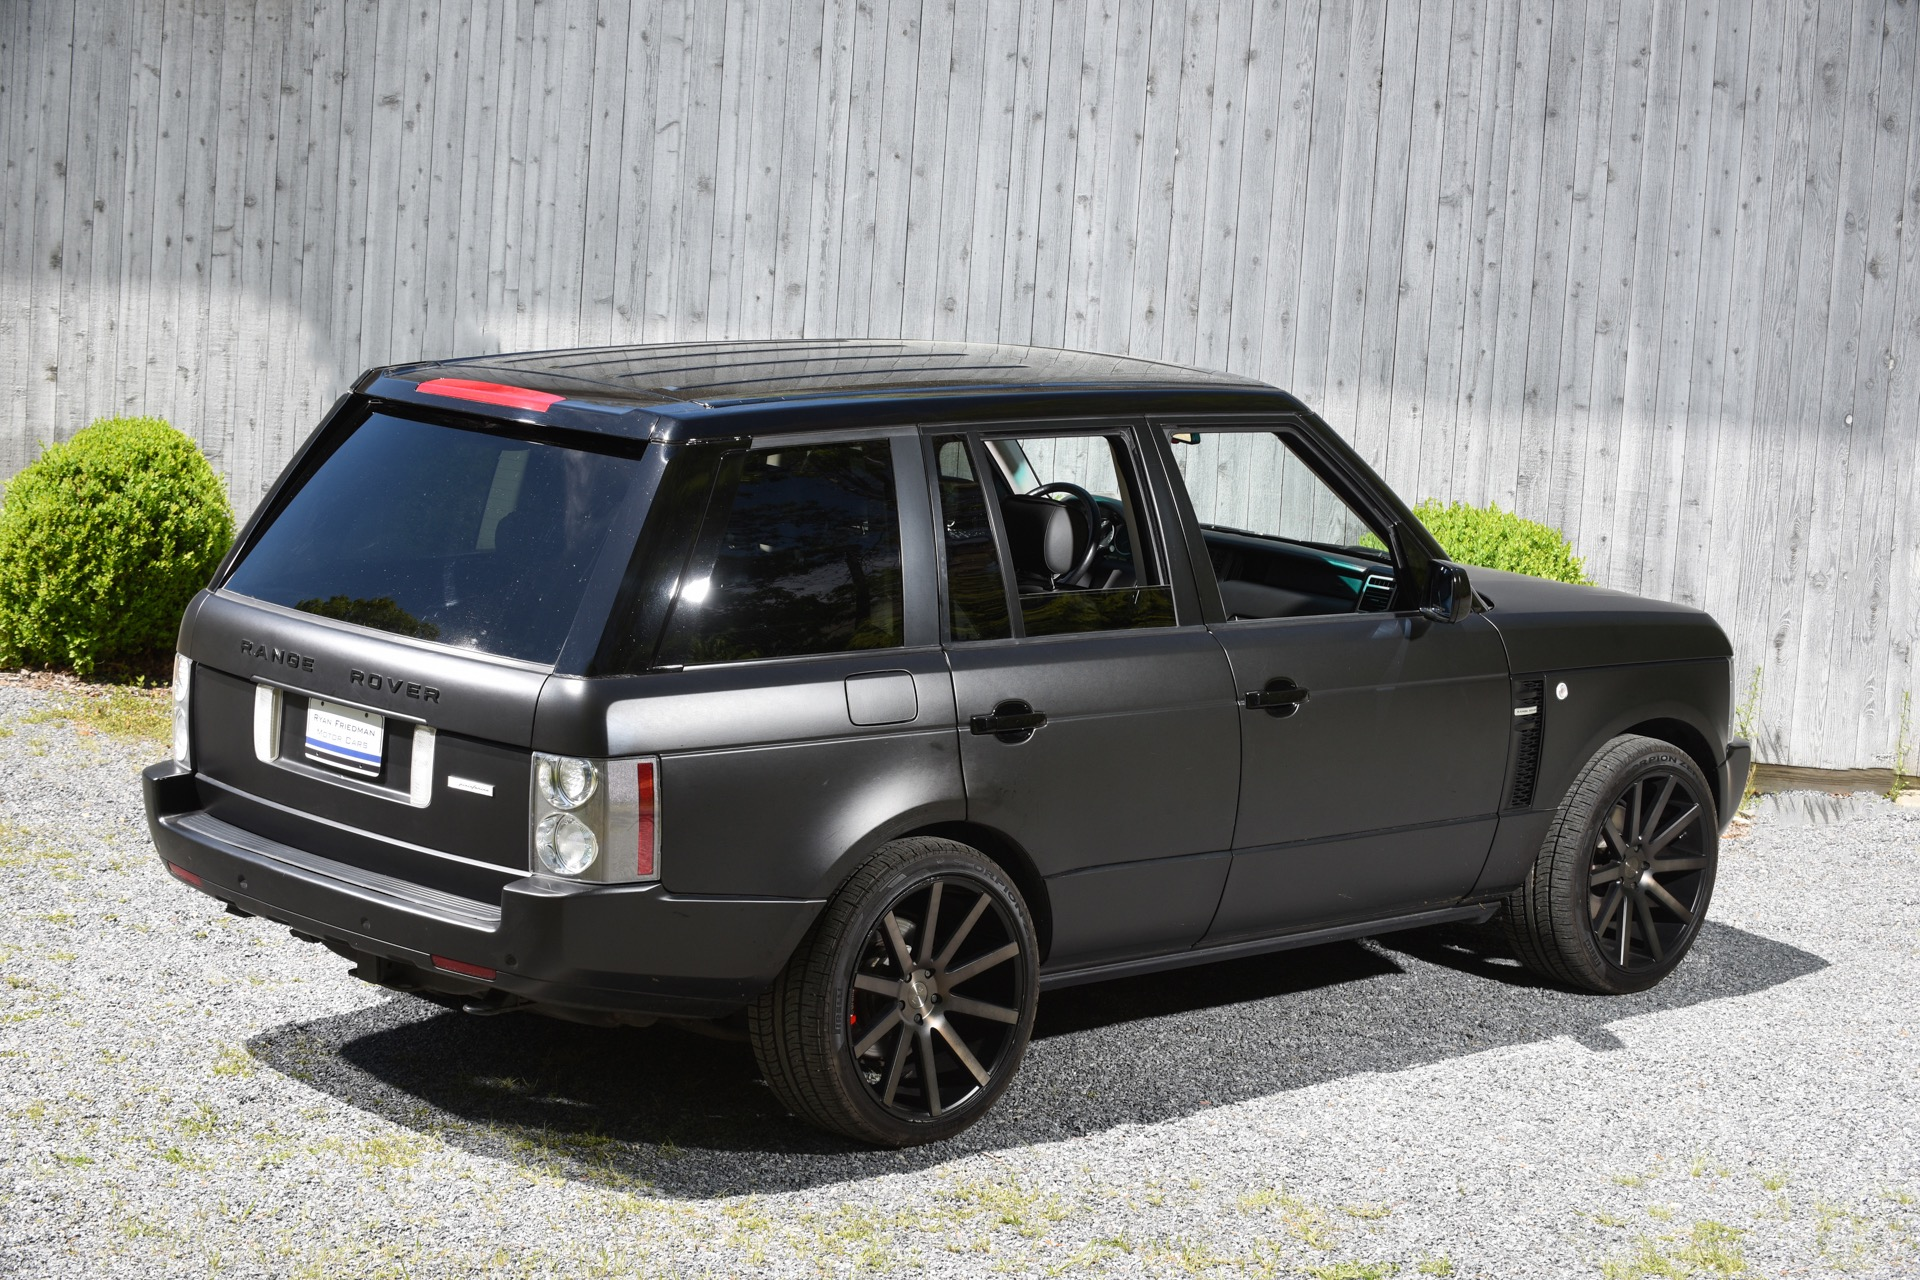 Used 2004 Land Rover Range Rover HSE | Valley Stream, NY